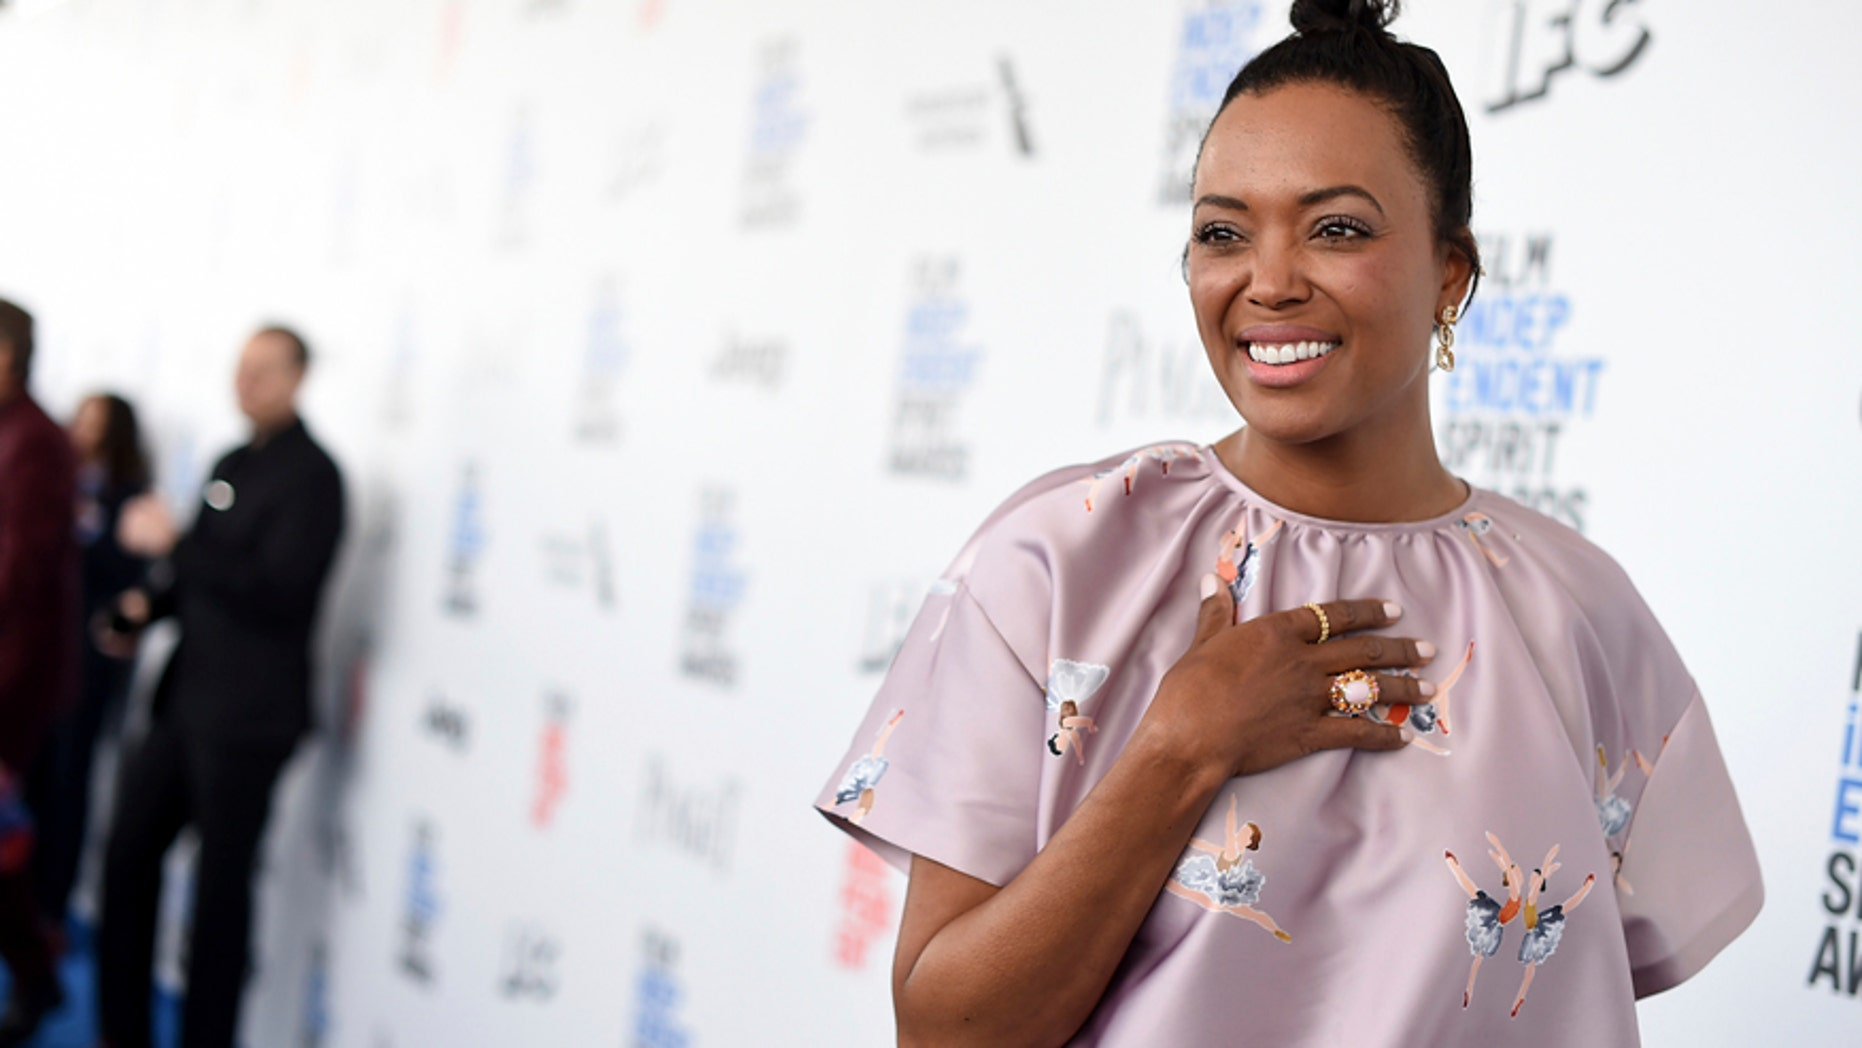 """In this Saturday, Feb. 25, 2017, file photo, Aisha Tyler arrives at the Film Independent Spirit Awards in Santa Monica, Calif. The daytime TV show """"The Talk"""" is losing Tyler, who announced on the air Thursday, June 15, that her increasingly busy career prompted the decision."""